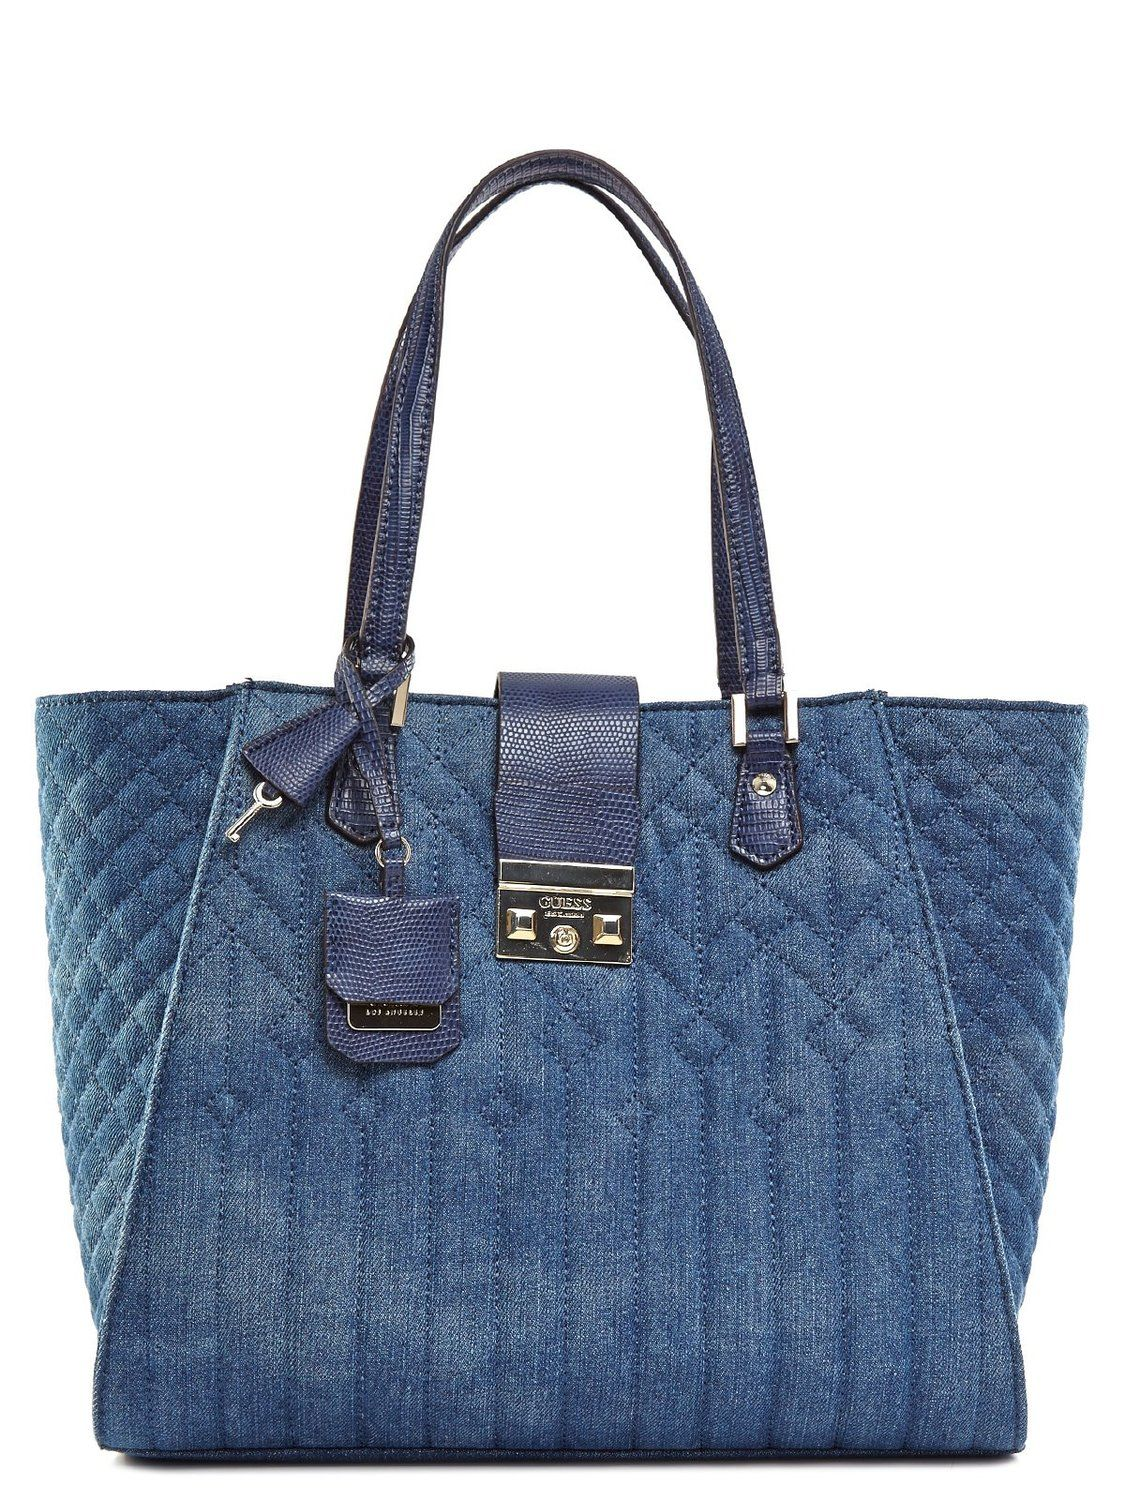 Guess Bags Amazon